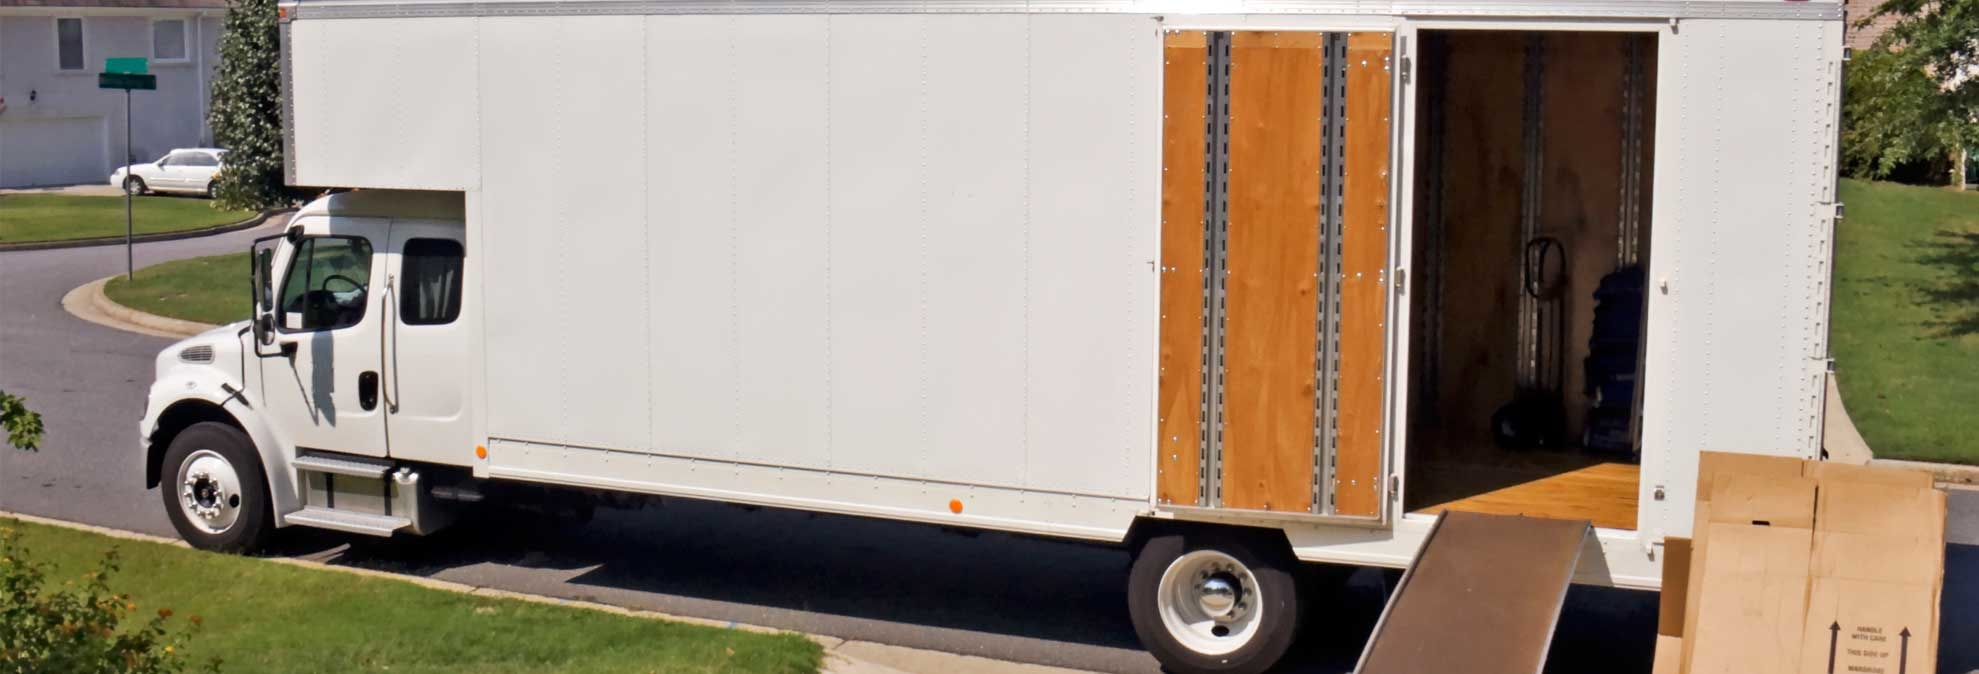 How To Choose A Reliable Moving Company Consumer Reports